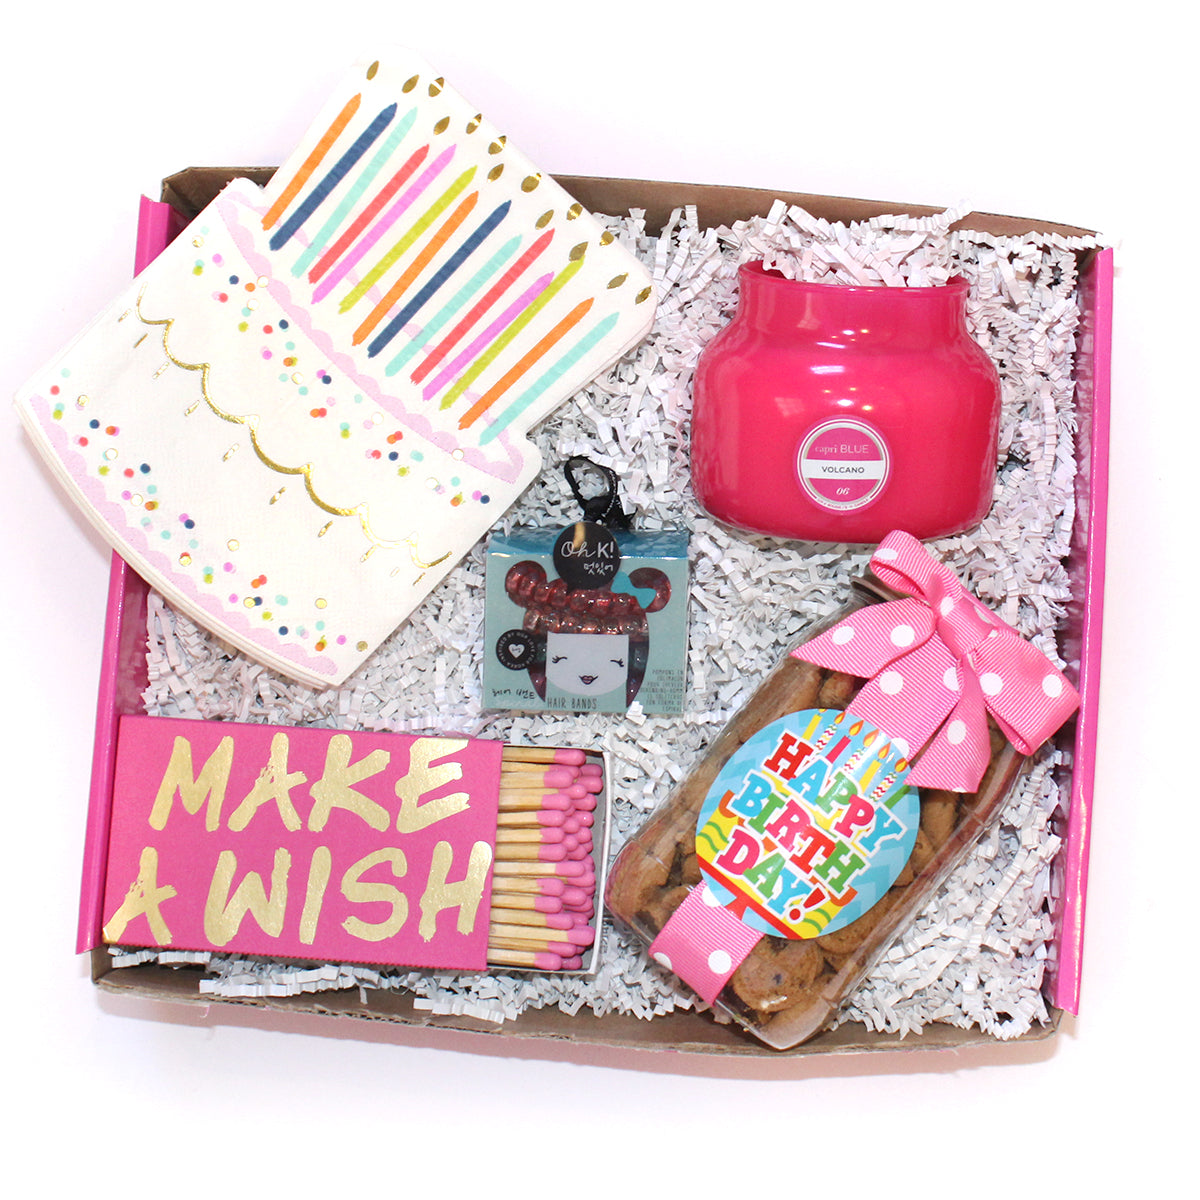 The perfect make a wish birthday box! include candle, napkins, matches, cookies and spiral hair bands